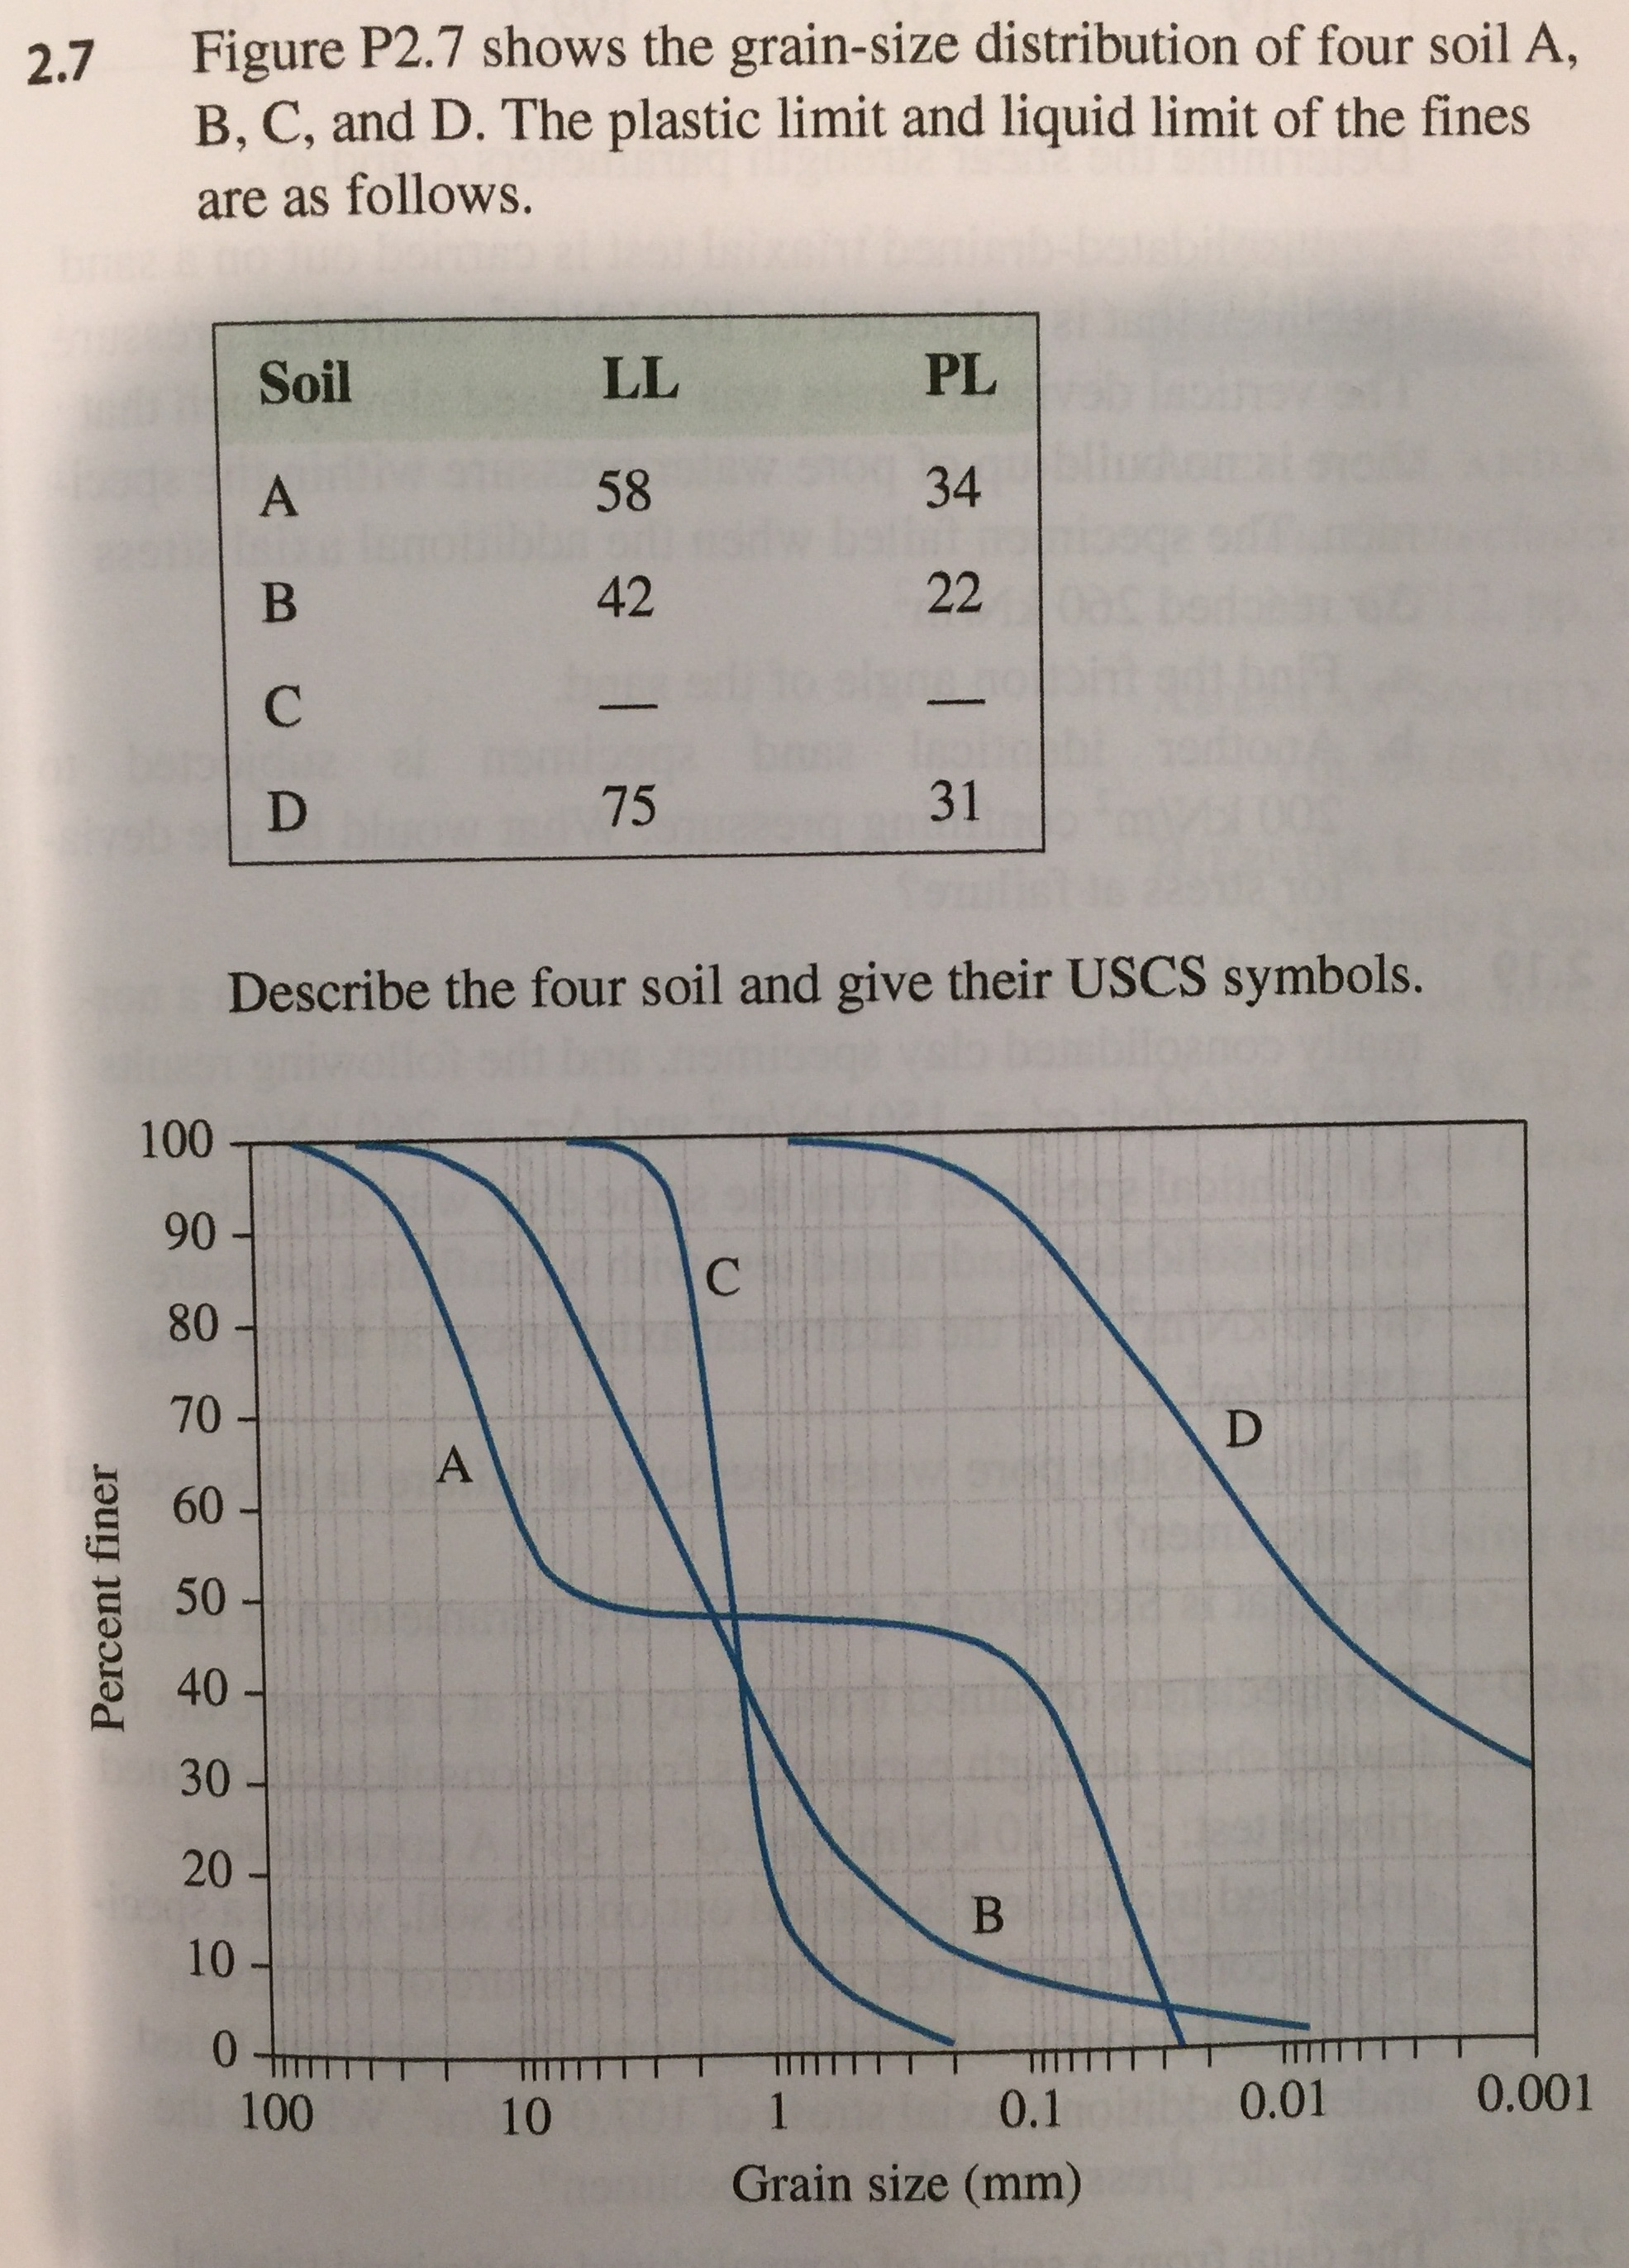 2.7 Figure P2.7 shows the grain-size distribution of four soil A, B, C, and D. The plastic limit and liquid limit of the fines are as follows. Soil PL 01 58 34 42 75 31 Describe the four soil and give their USCS symbols. 100 90 80 70 - 60 50 o 40 30 20 10 0.01 0.001 100 10 0.1 Grain size (mm)